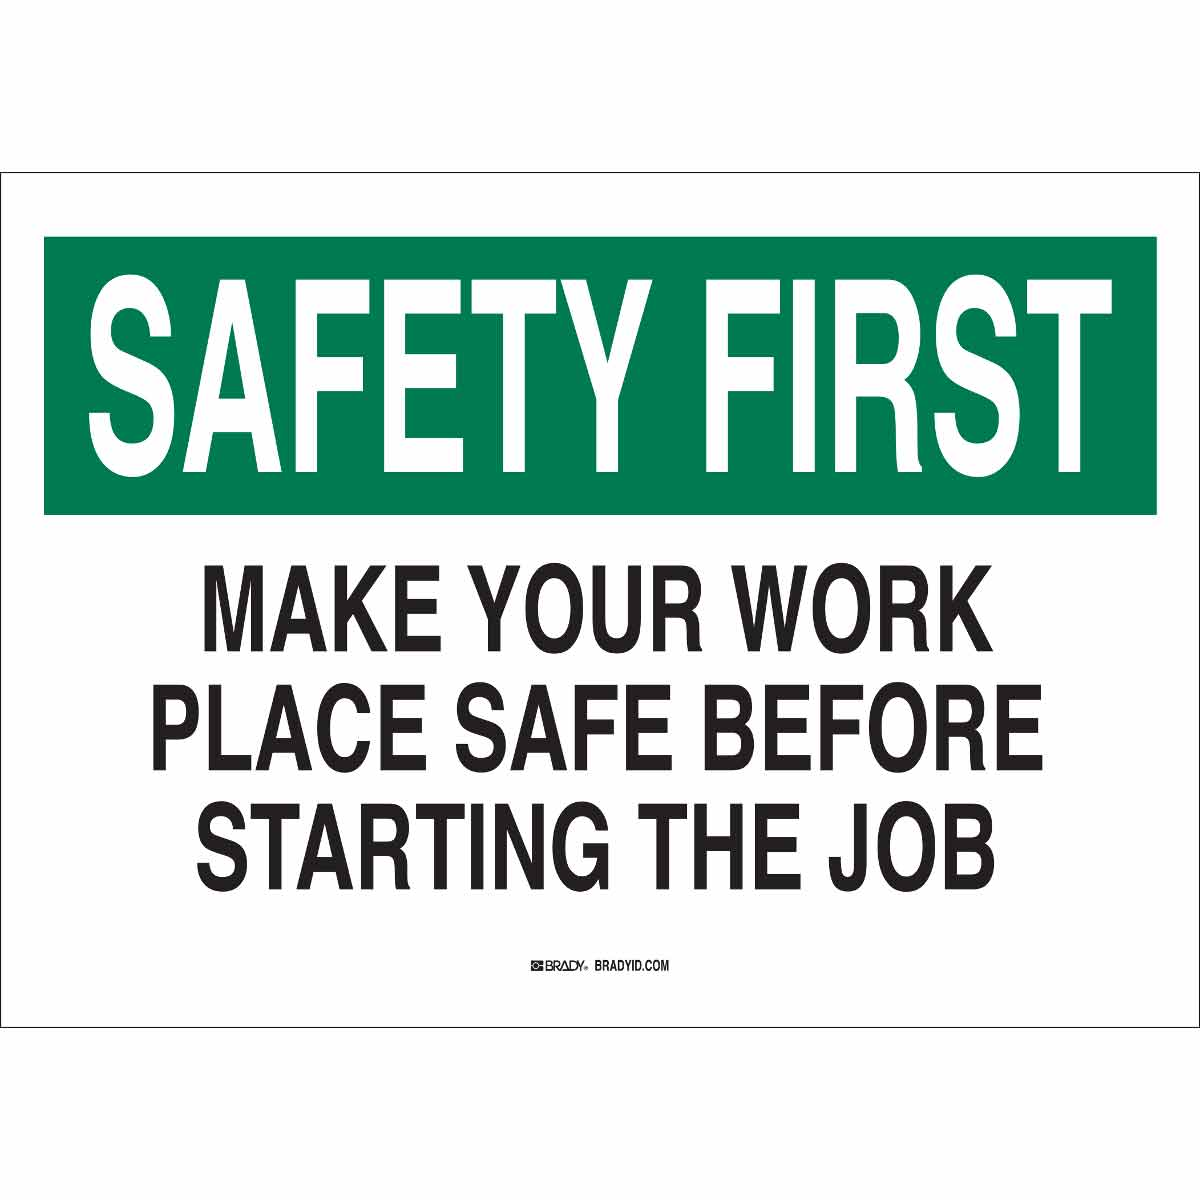 brady part 25320 safety first make your work place safe before